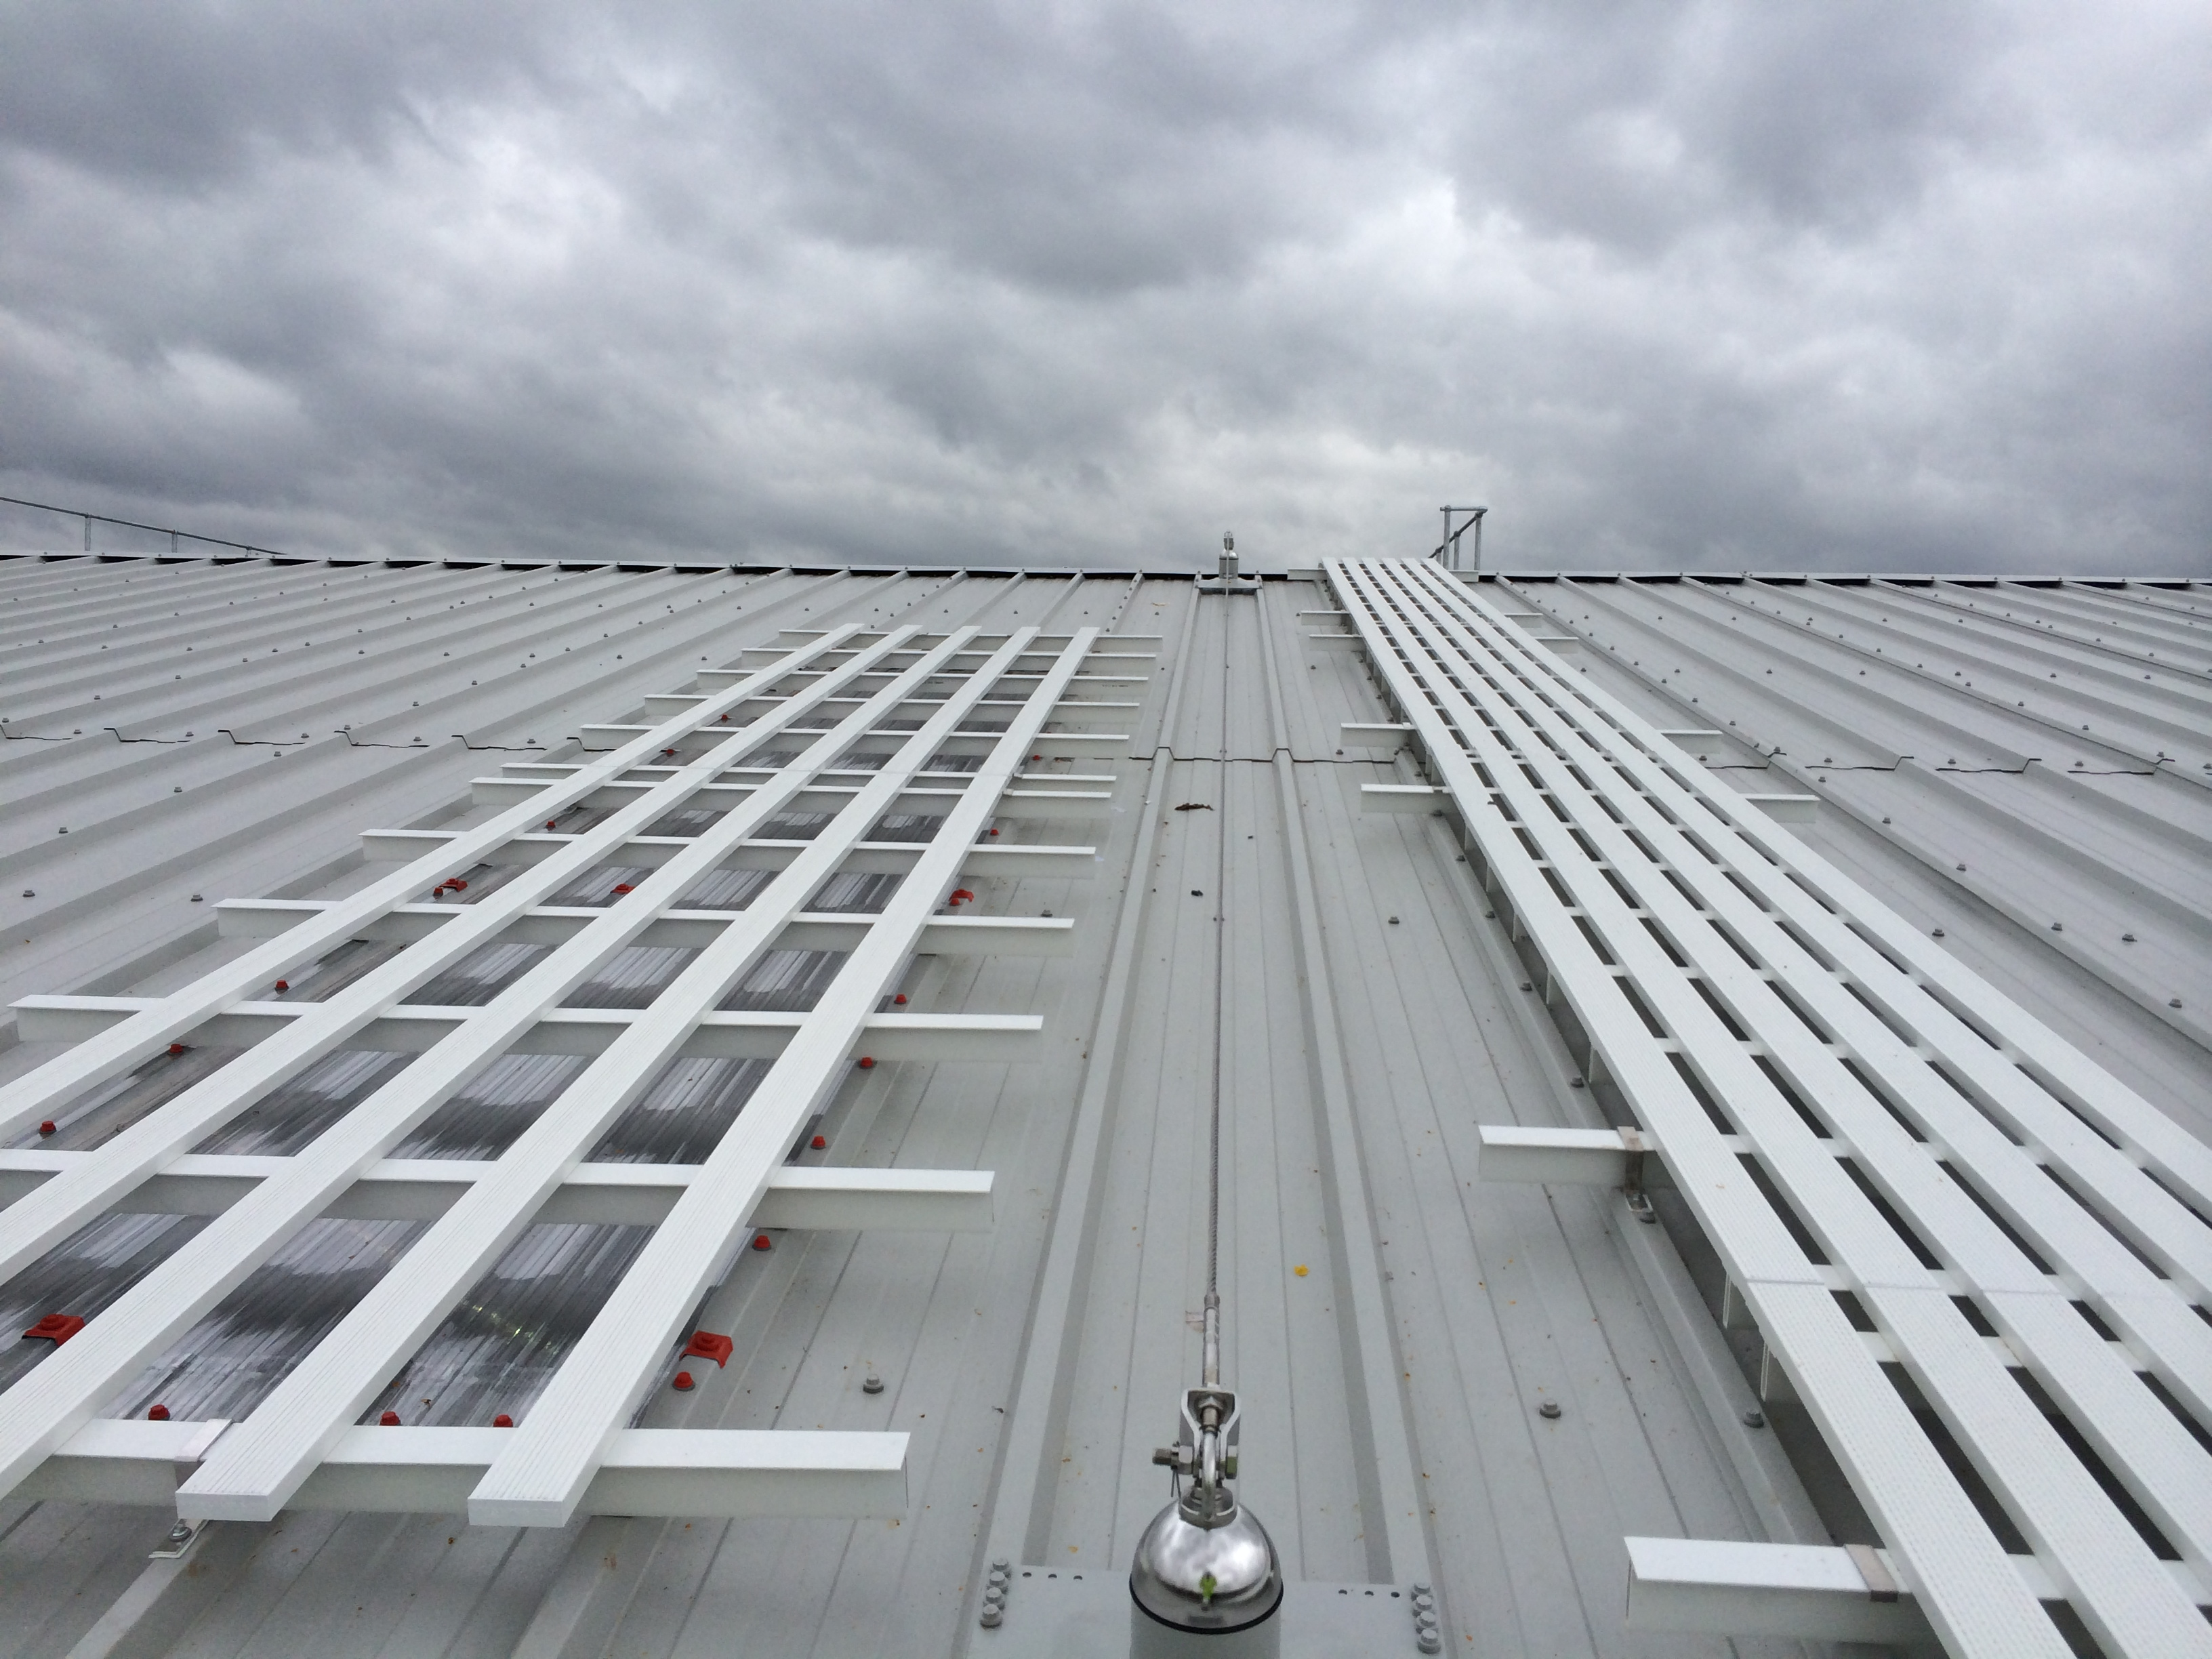 Walksafe Rooflight Covers Mantech Safety Systems Ltd